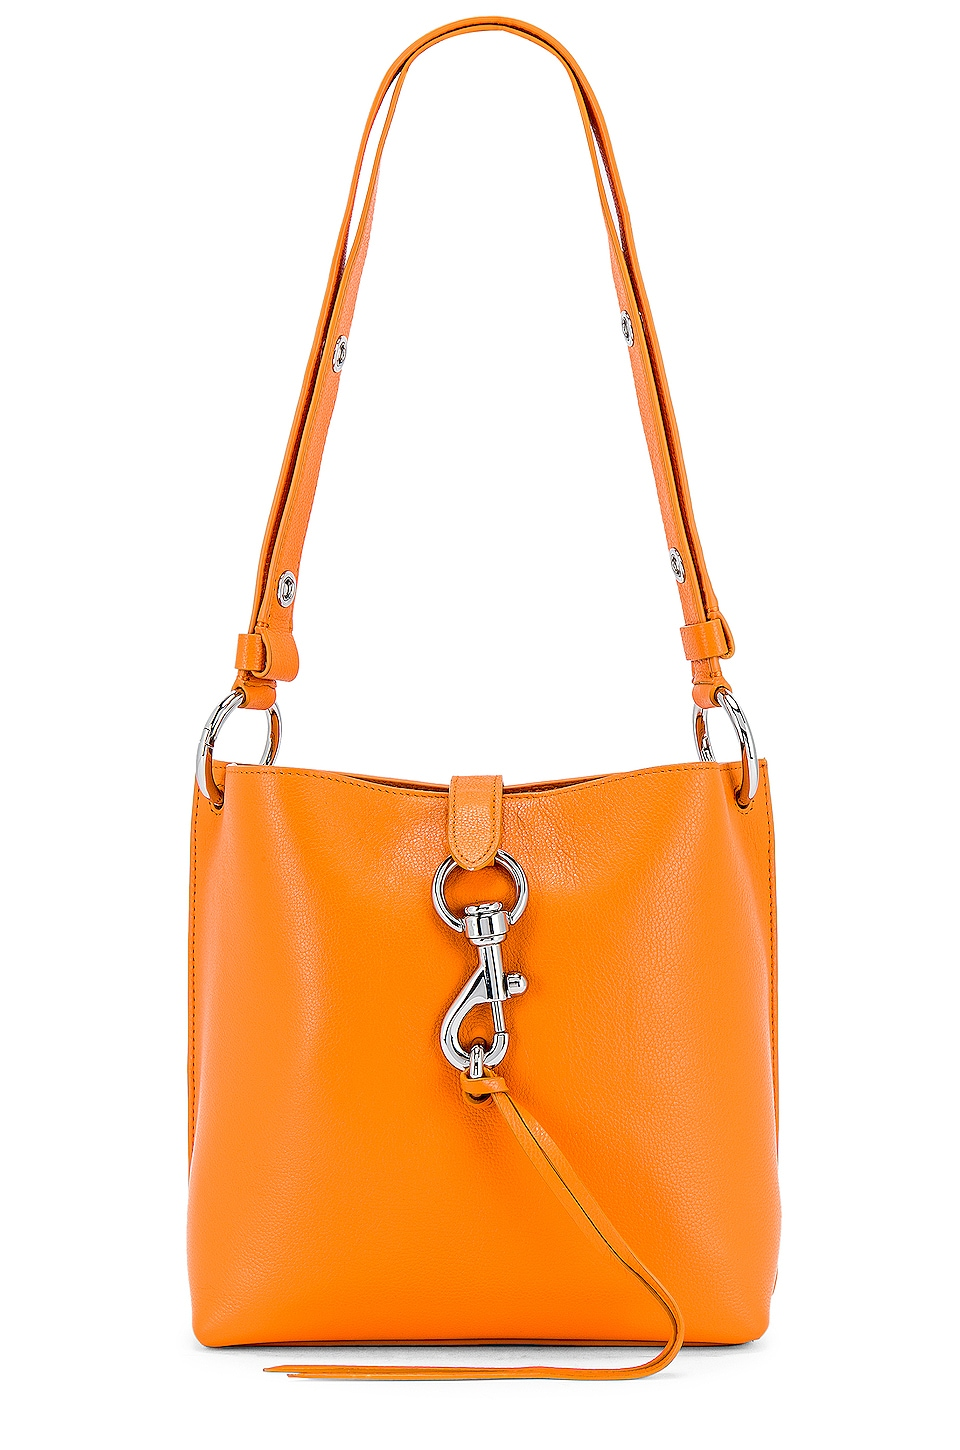 Rebecca Minkoff Megan Small Feed Bag in Monarch